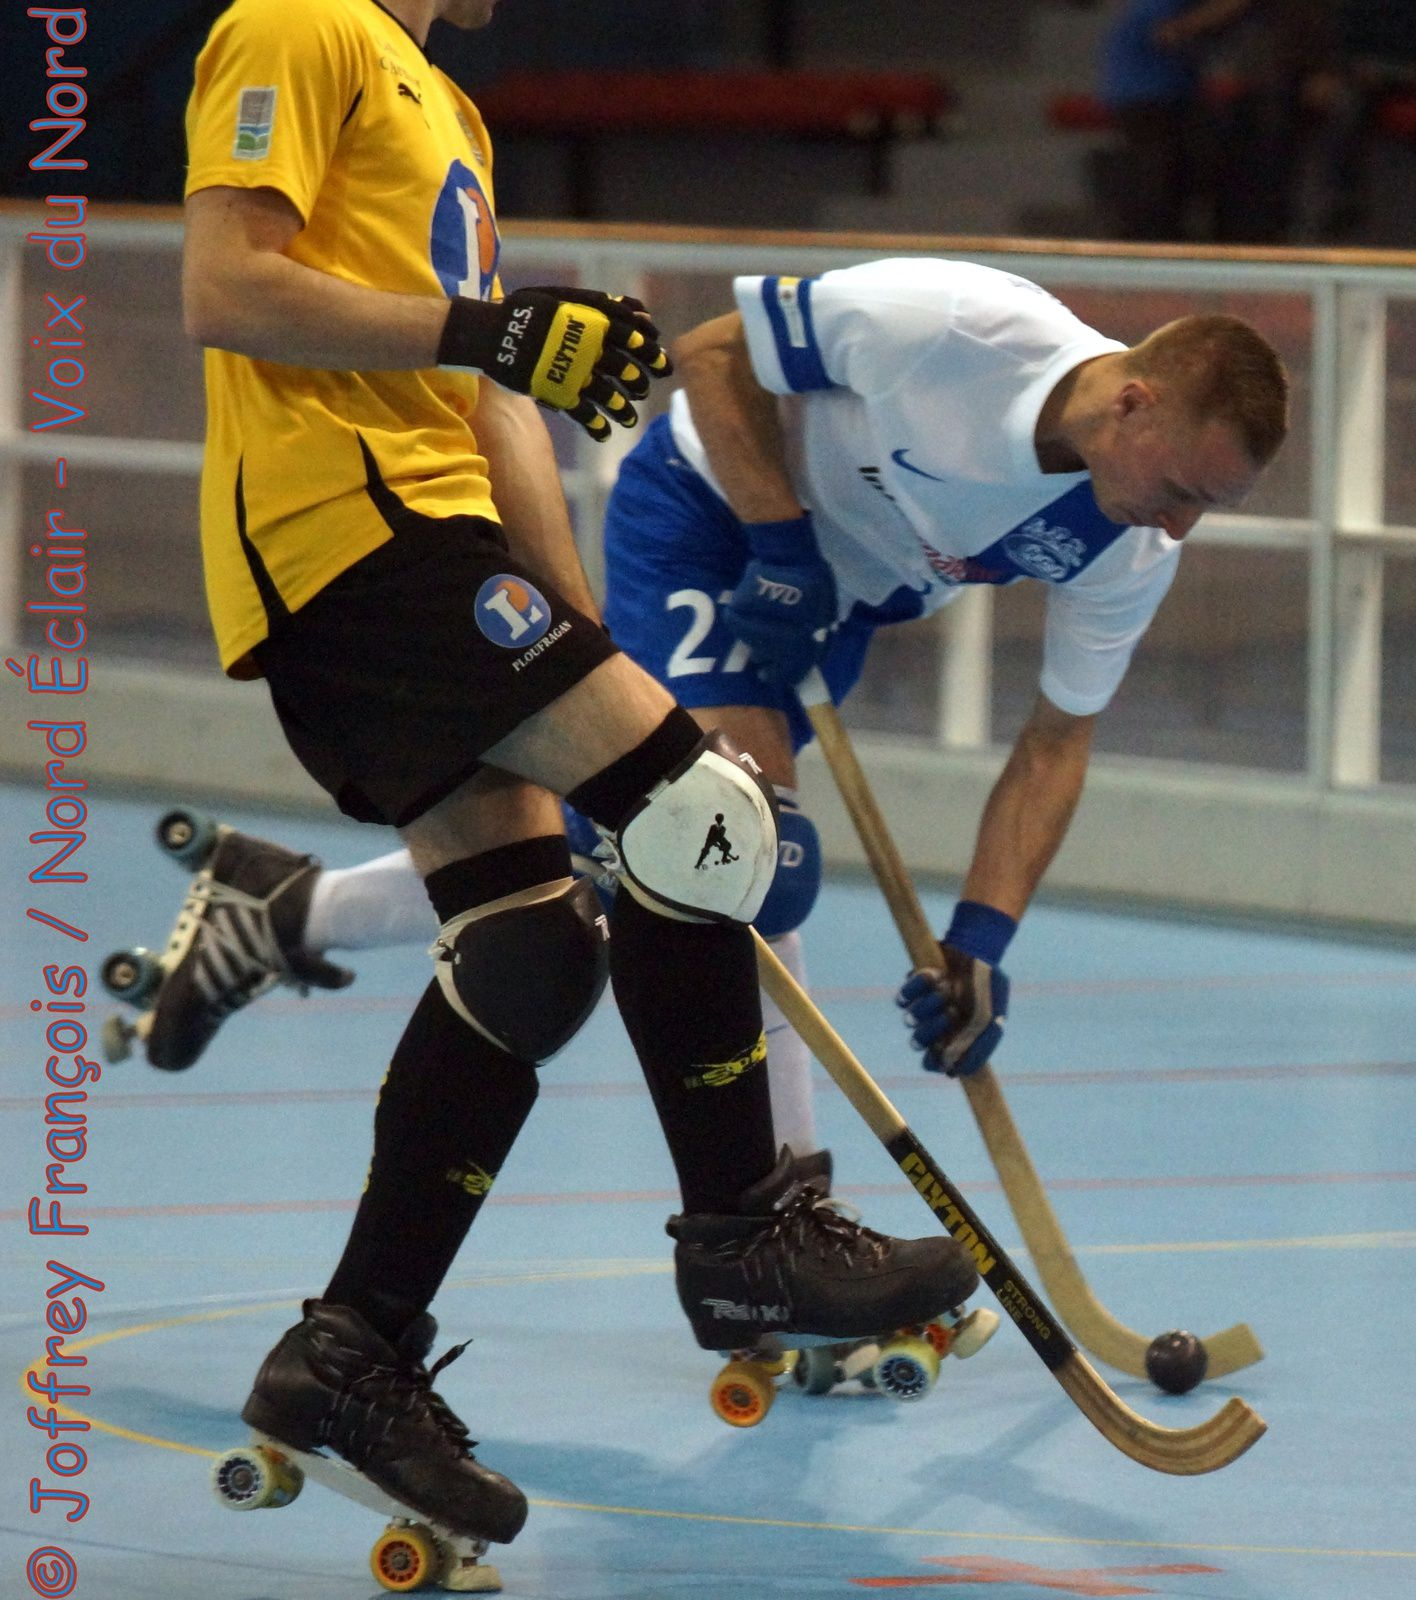 12.04.13 Ping (APR-PPN) Rink (HVF-Ploufragan)